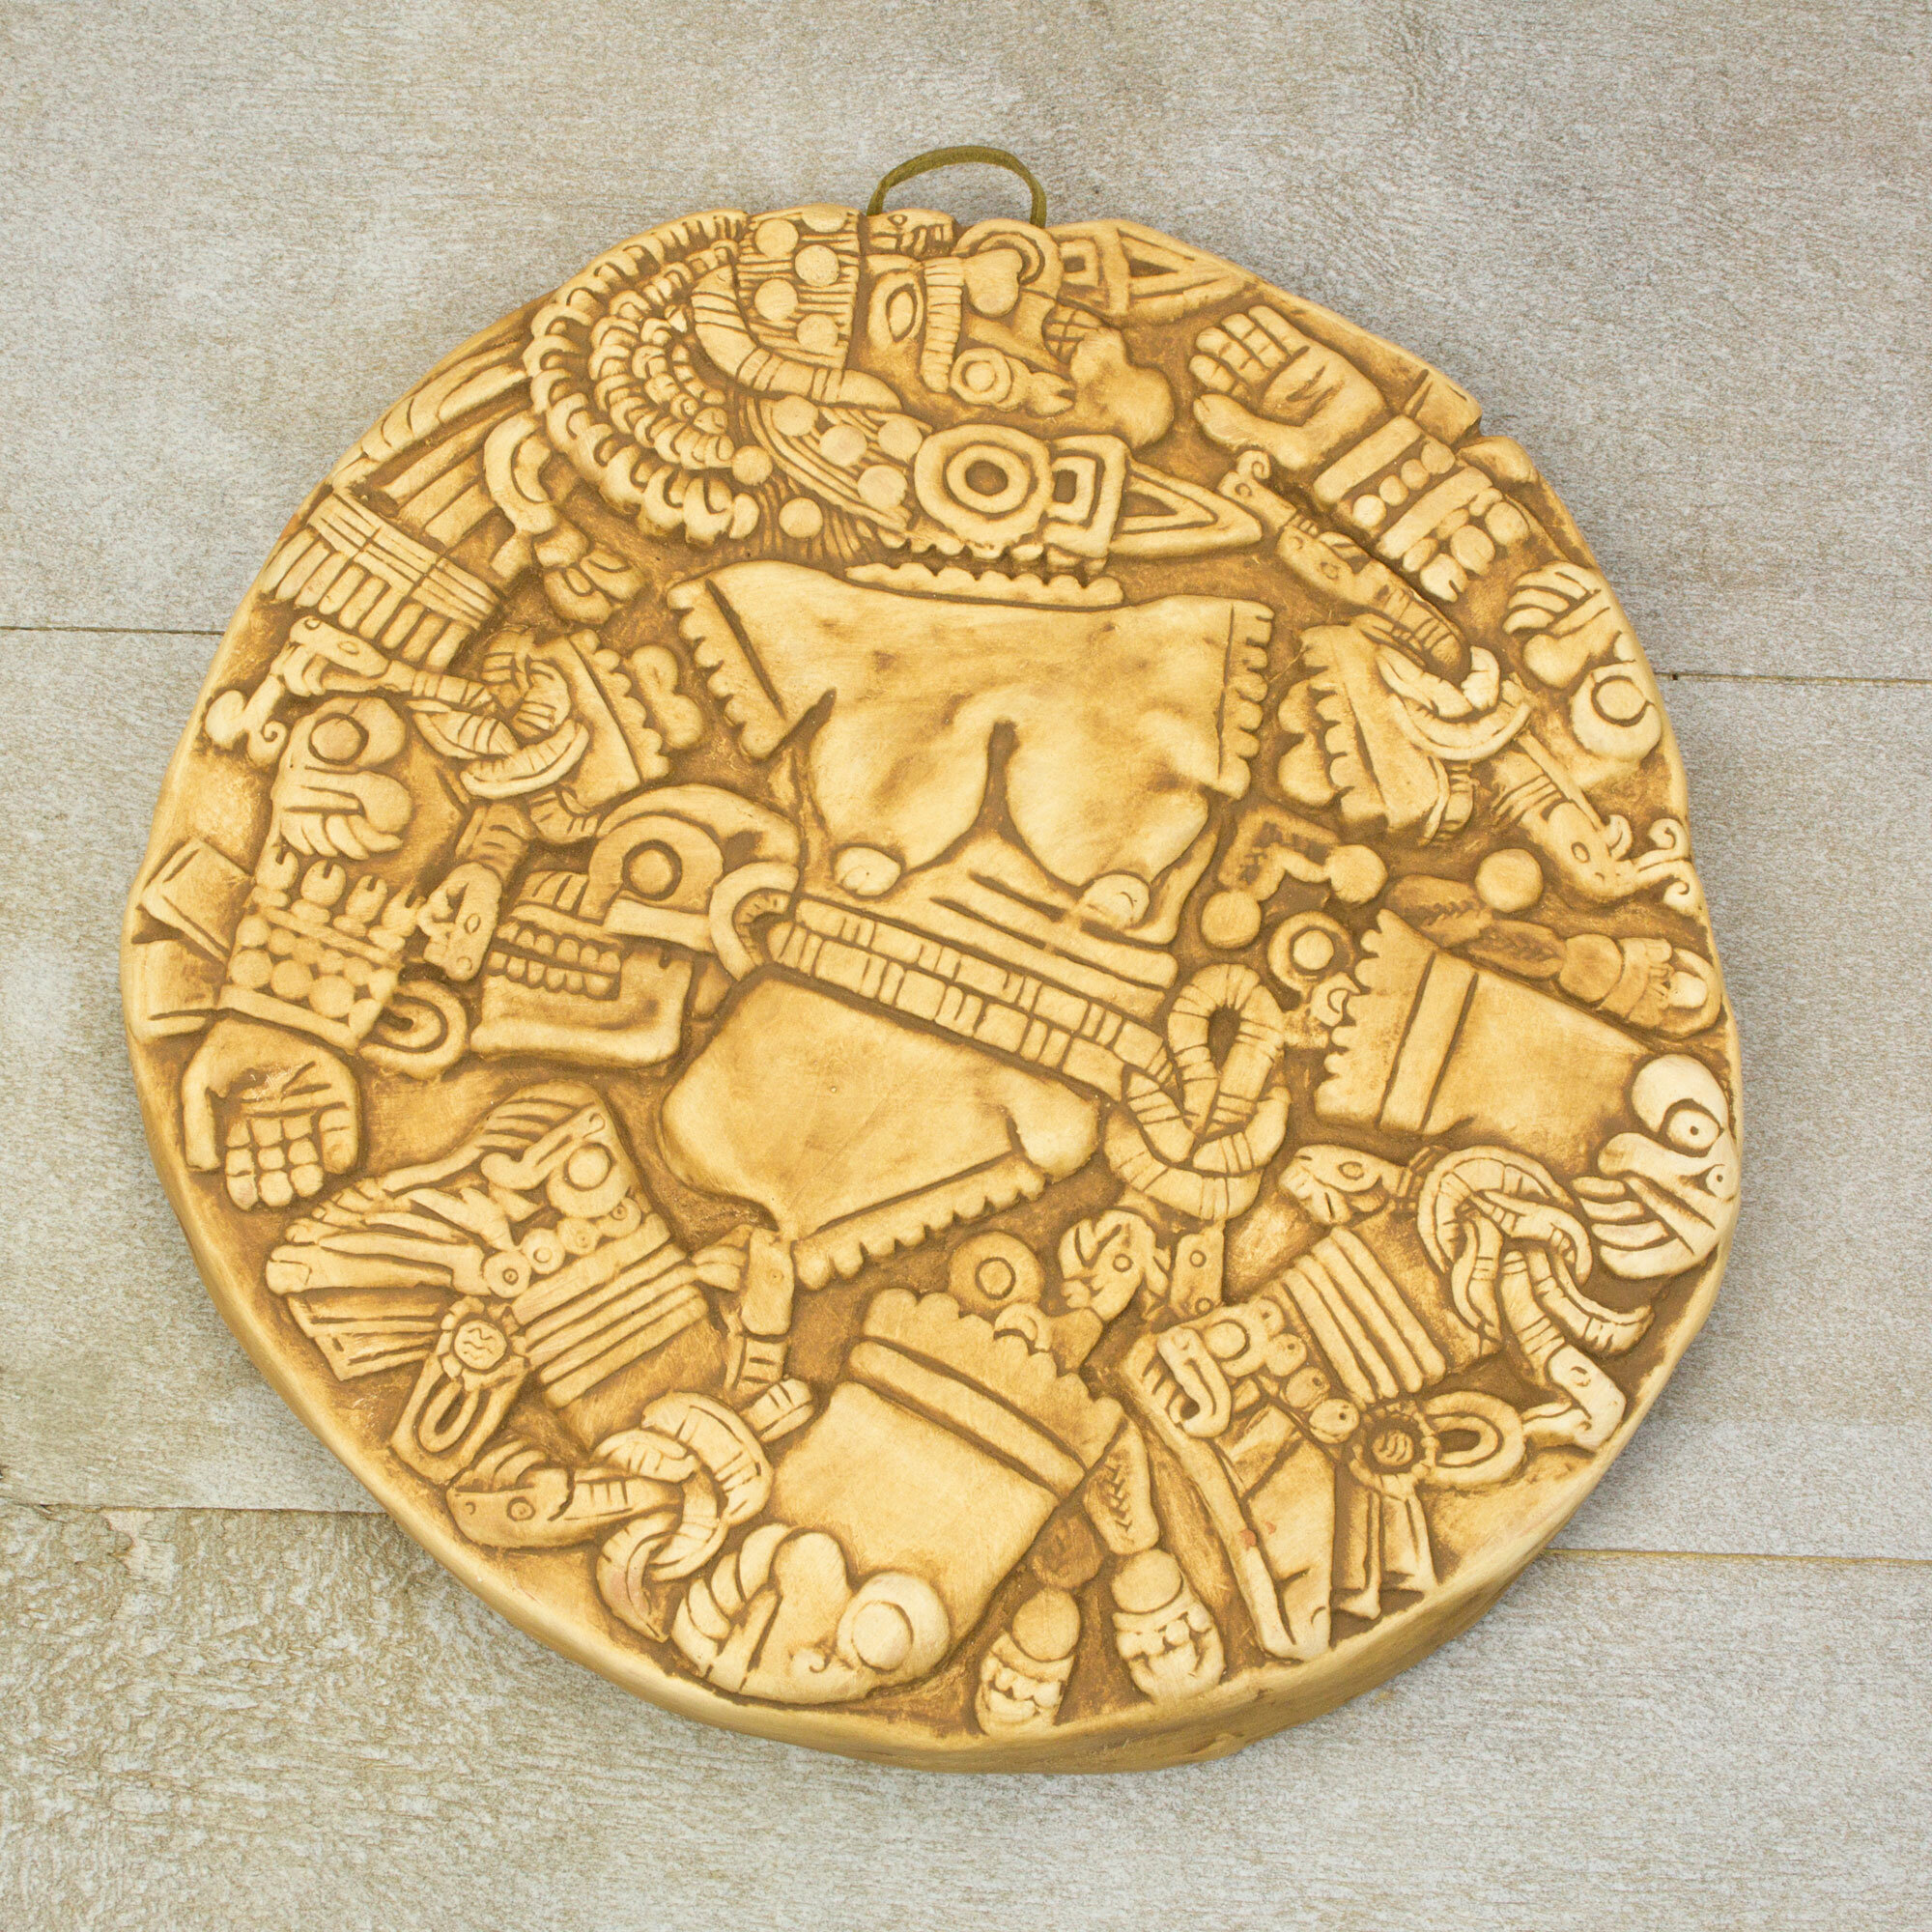 Aztec Moon Goddess Collectible Hand Crafted Archaeological Museum Replica Ceramic Plaque Wall Decor